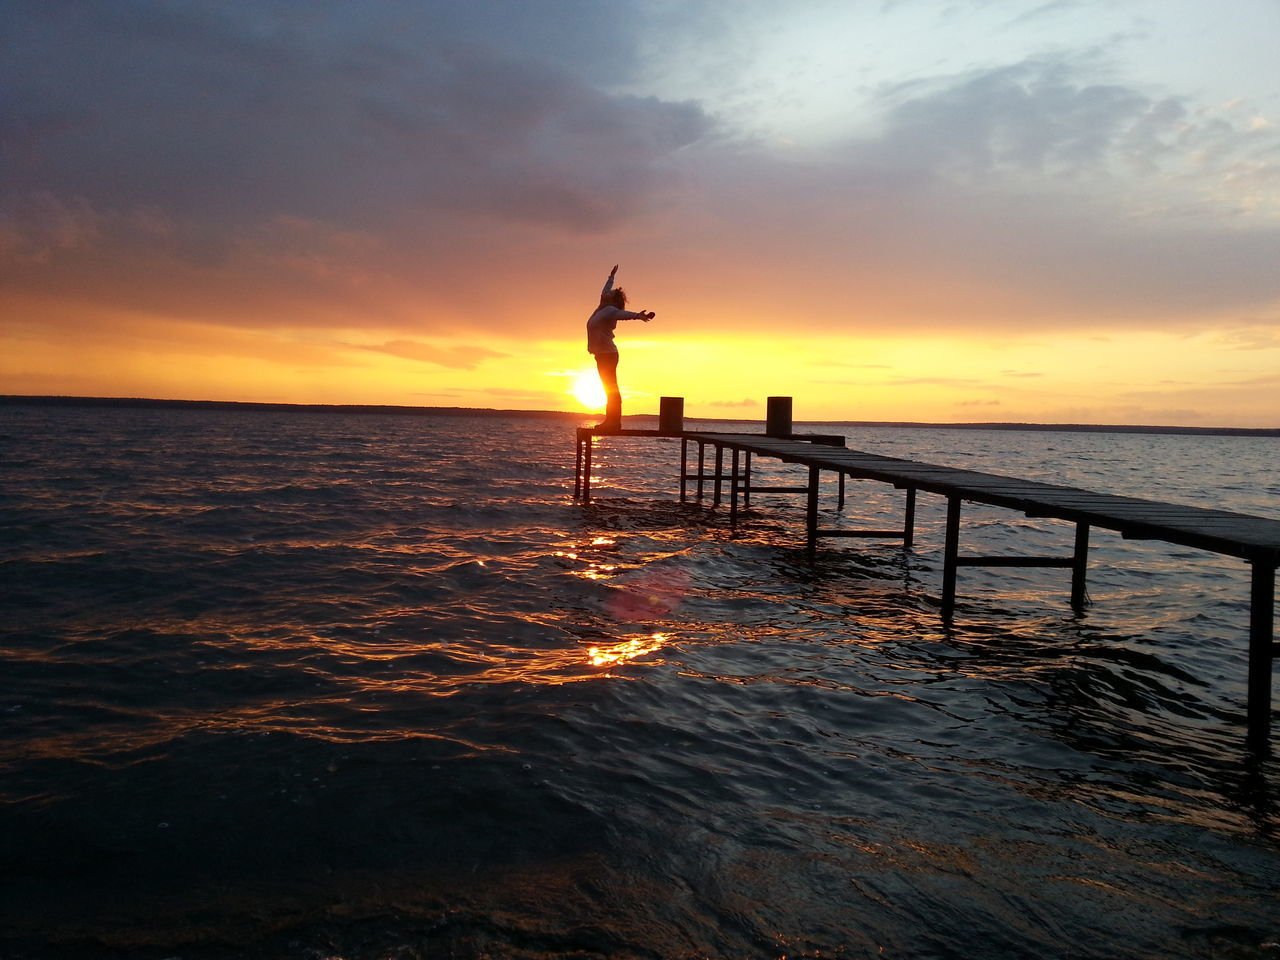 sunset, sea, water, beauty in nature, one person, silhouette, sky, nature, scenics, orange color, real people, tranquil scene, standing, cloud - sky, lifestyles, leisure activity, outdoors, horizon over water, jumping, full length, day, people